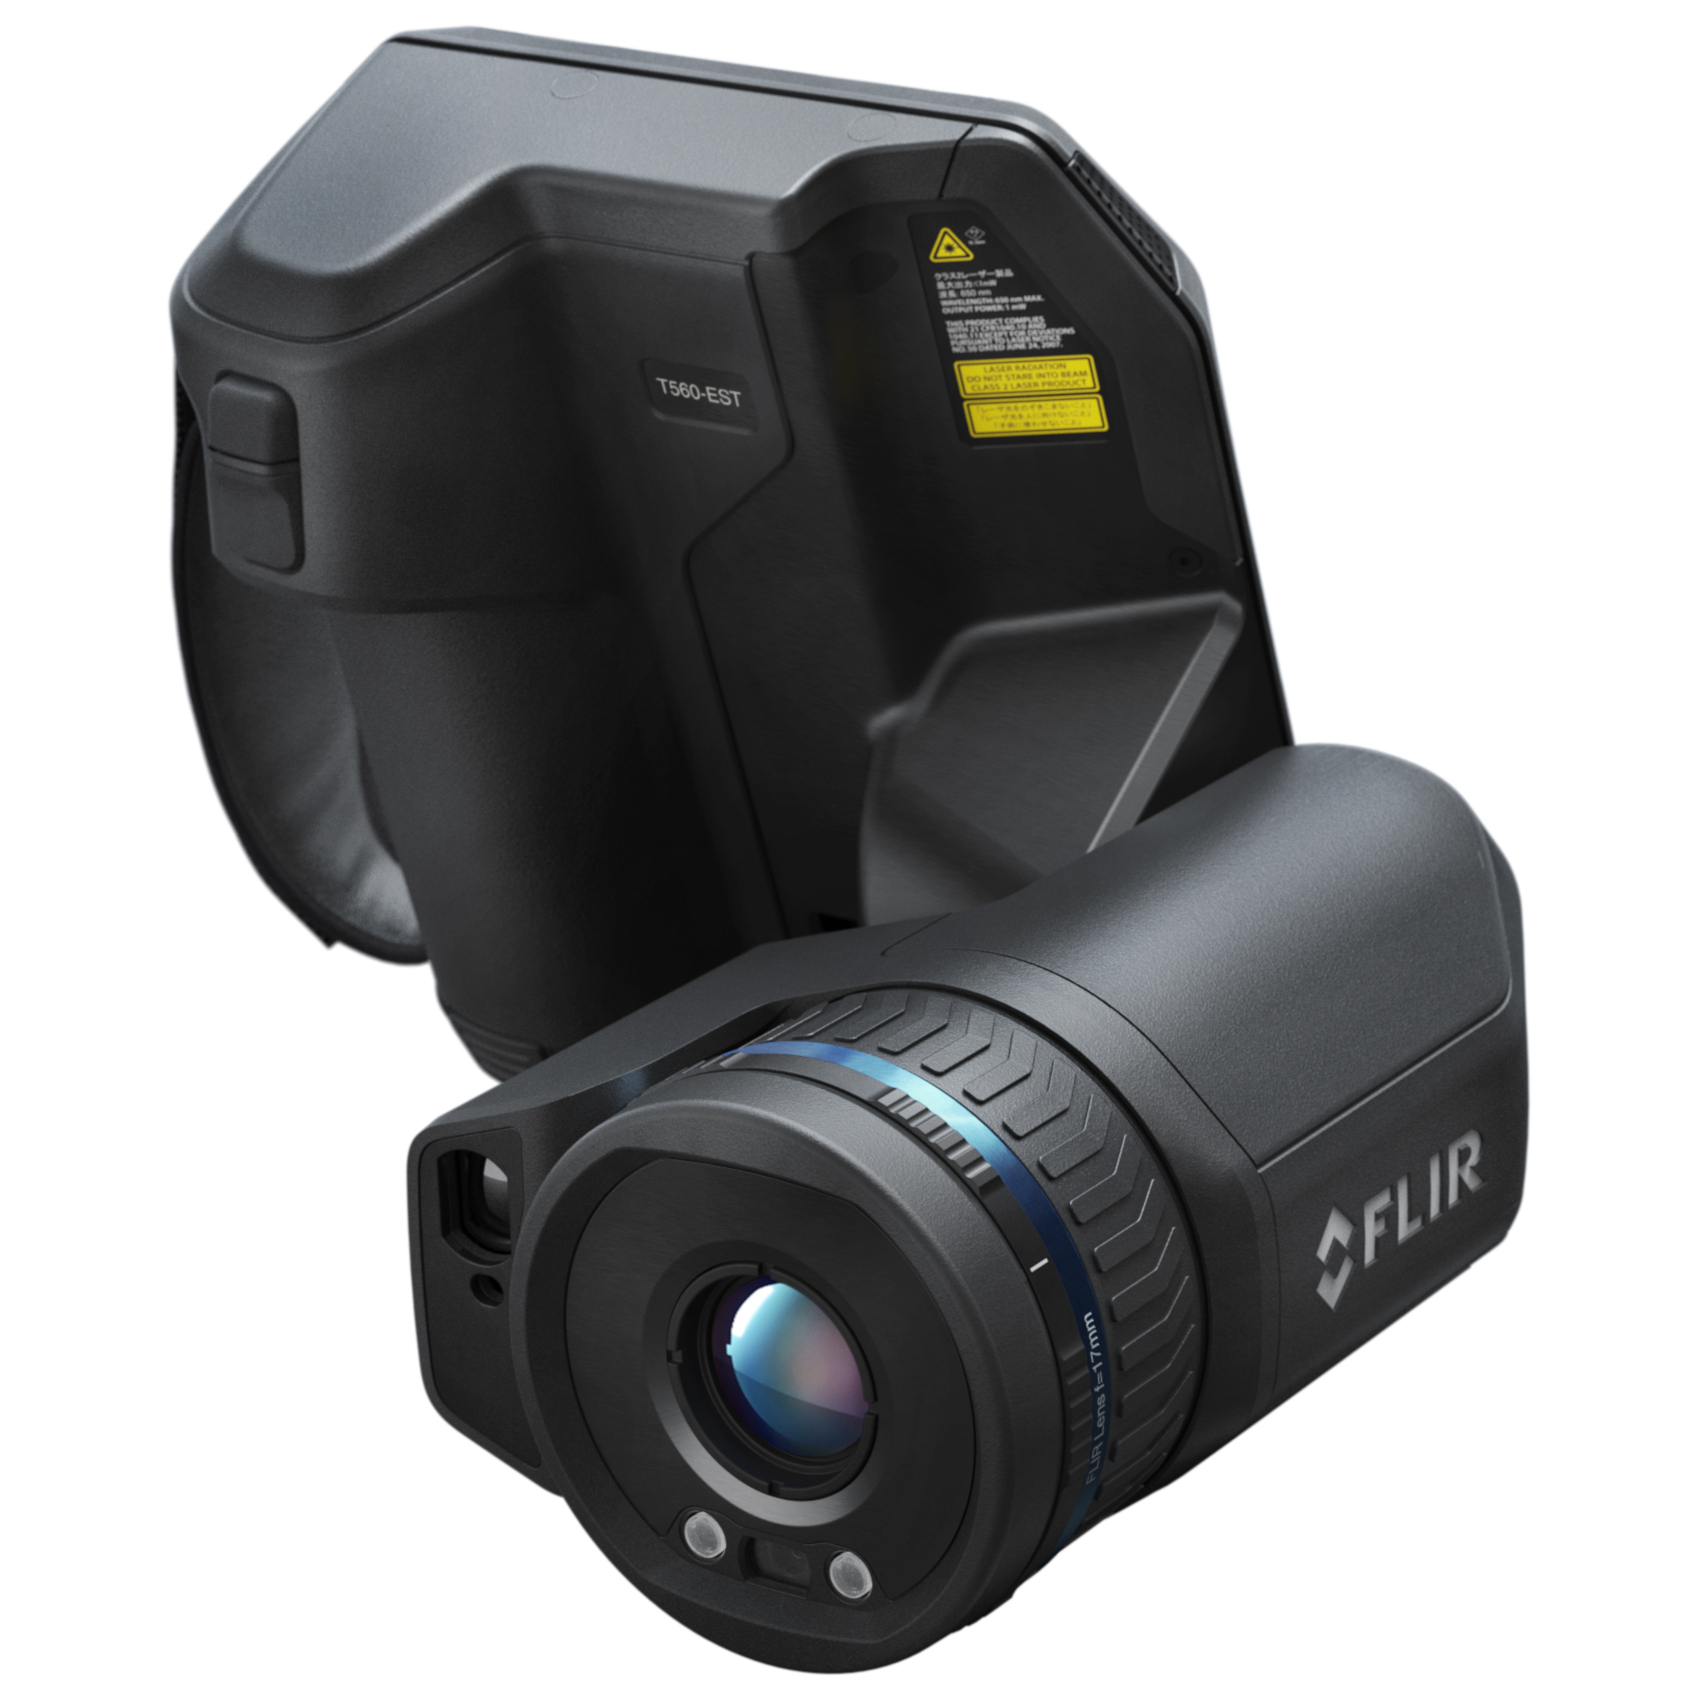 Flir T560-EST Thermal Camera for Screening Elevated Skin-Body Temperature, 640 x 480 Resolution, Accurate Readings within 59 and 113 F